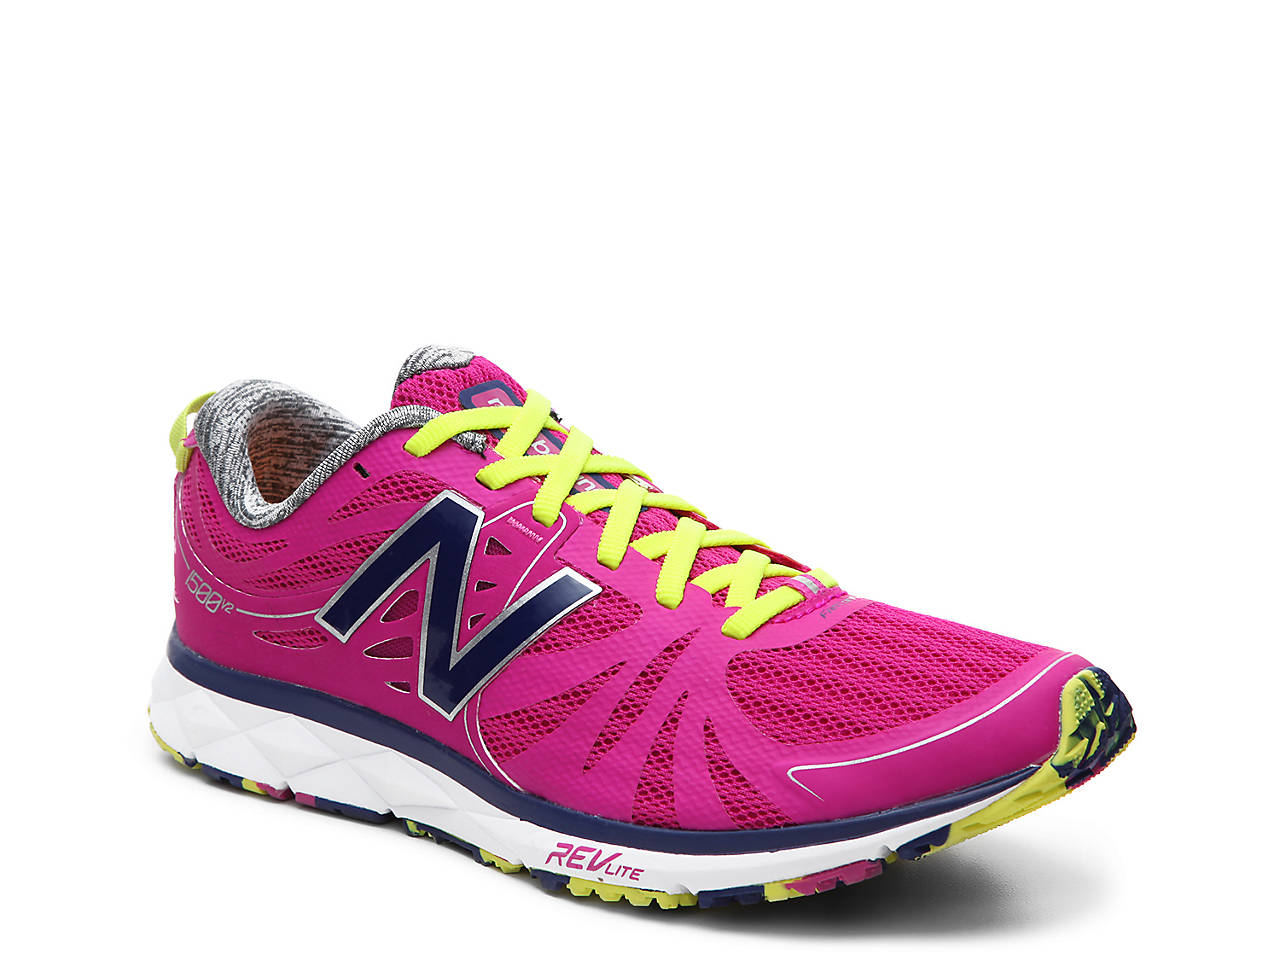 new balance 1500v2 women's shoes